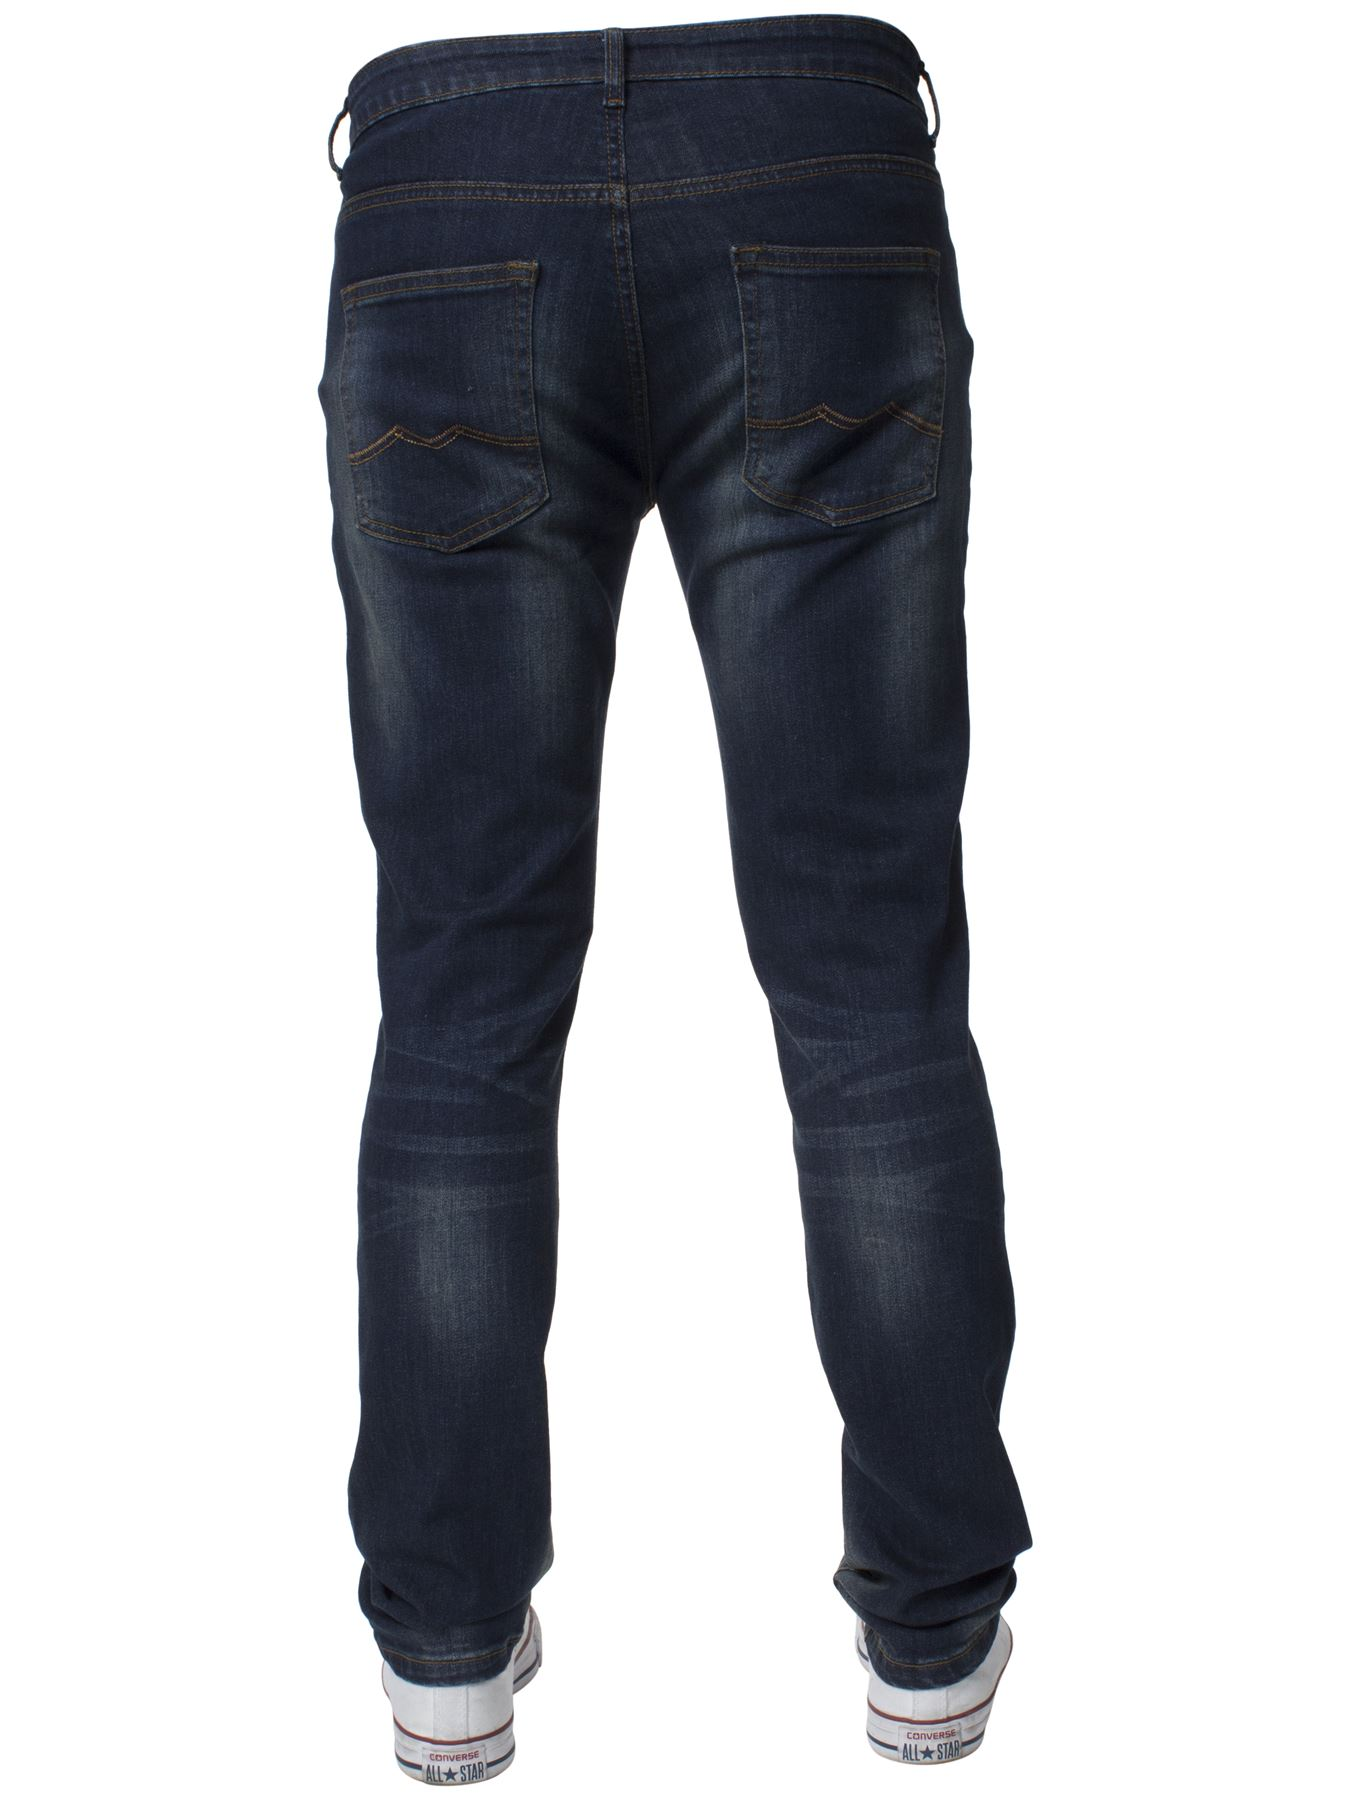 Kruze-Mens-Skinny-Stretch-Flex-Denim-Jeans-Slim-Fit-Trouser-Pants-Big-King-Sizes thumbnail 18